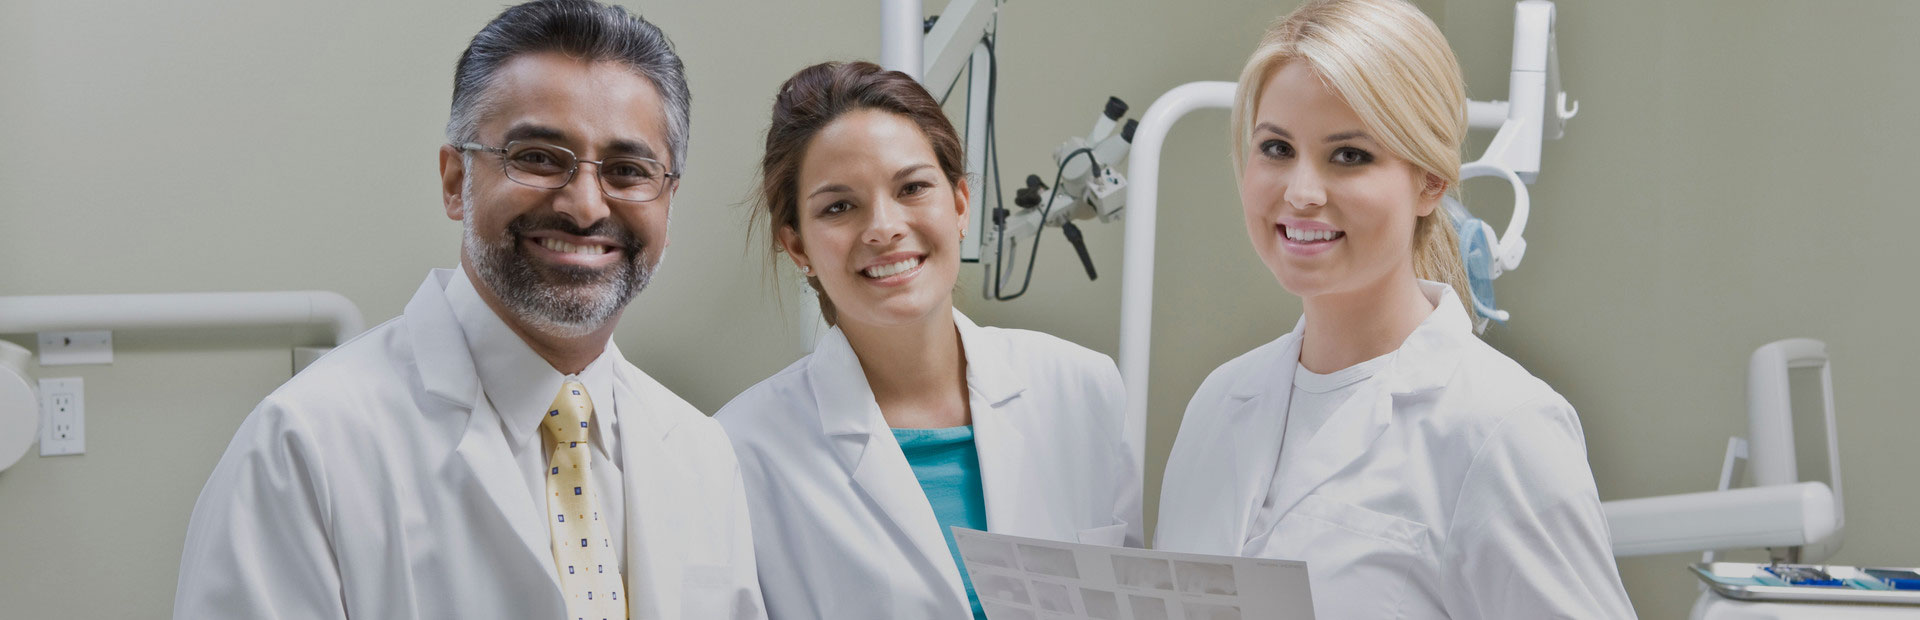 Dentists Smiling